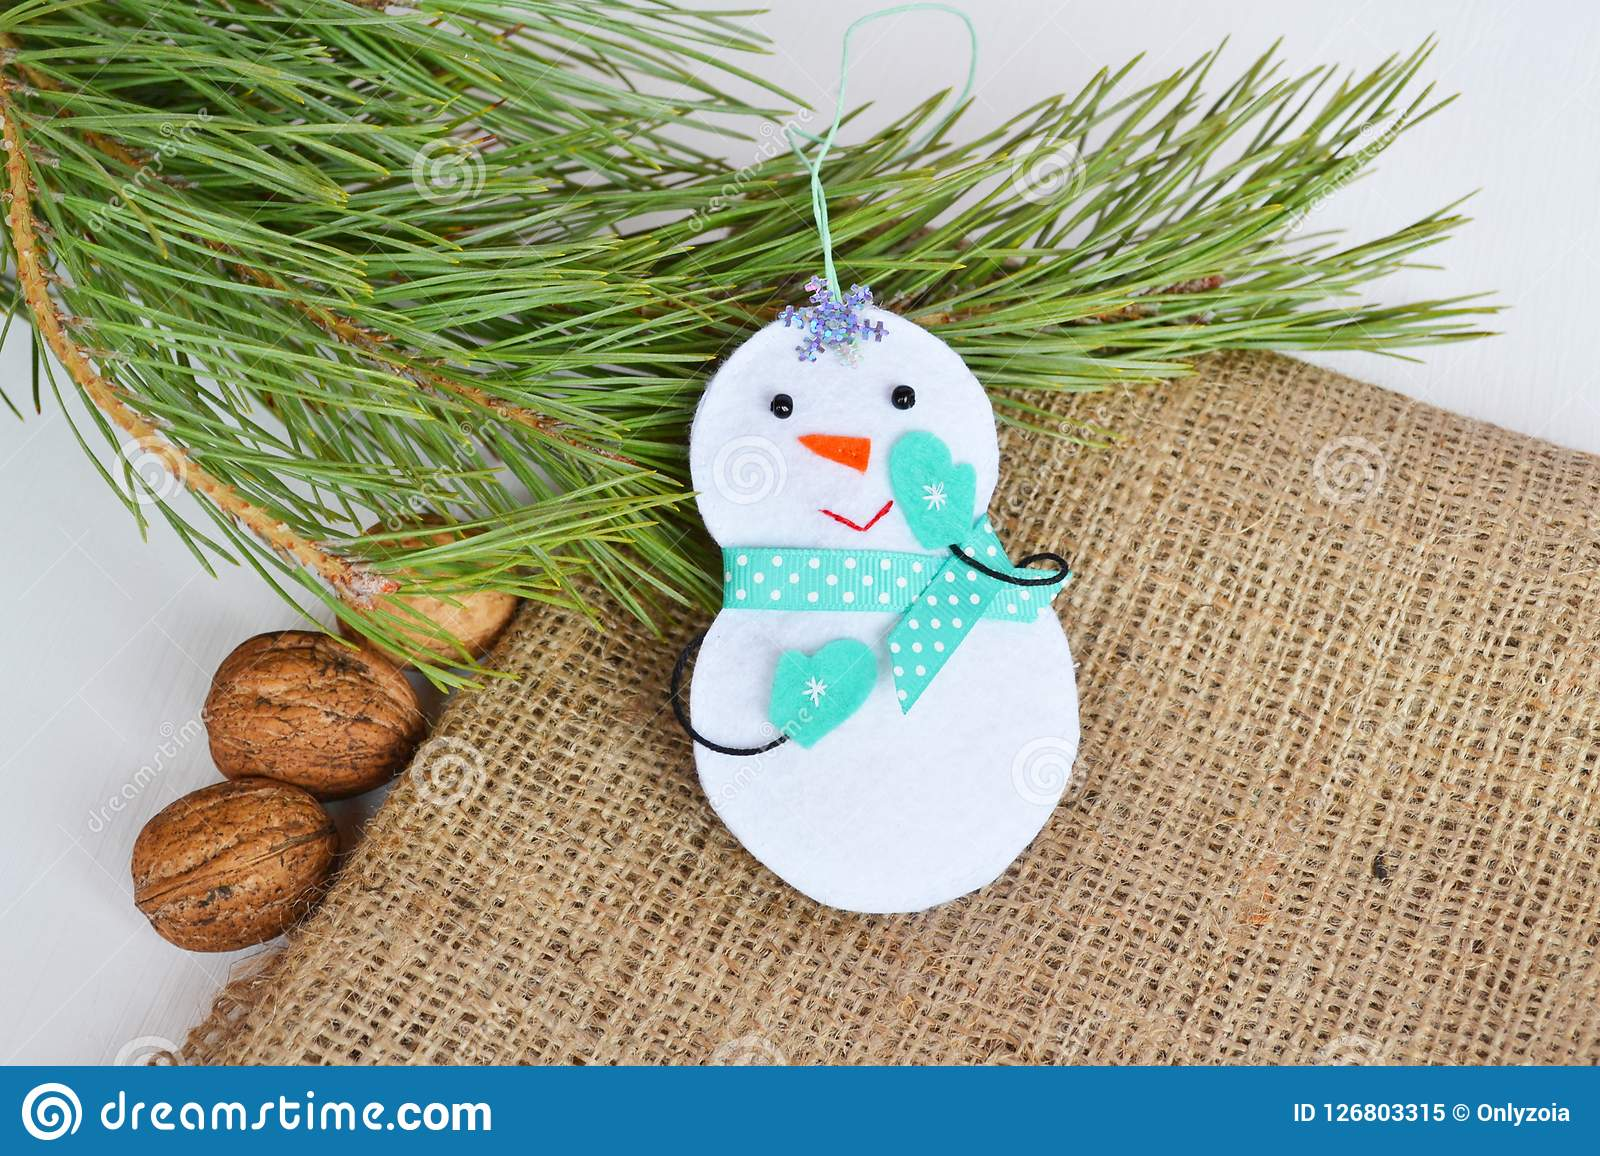 Handmade Felt Christmas Snowman Toy Felt Decoration Stock Image